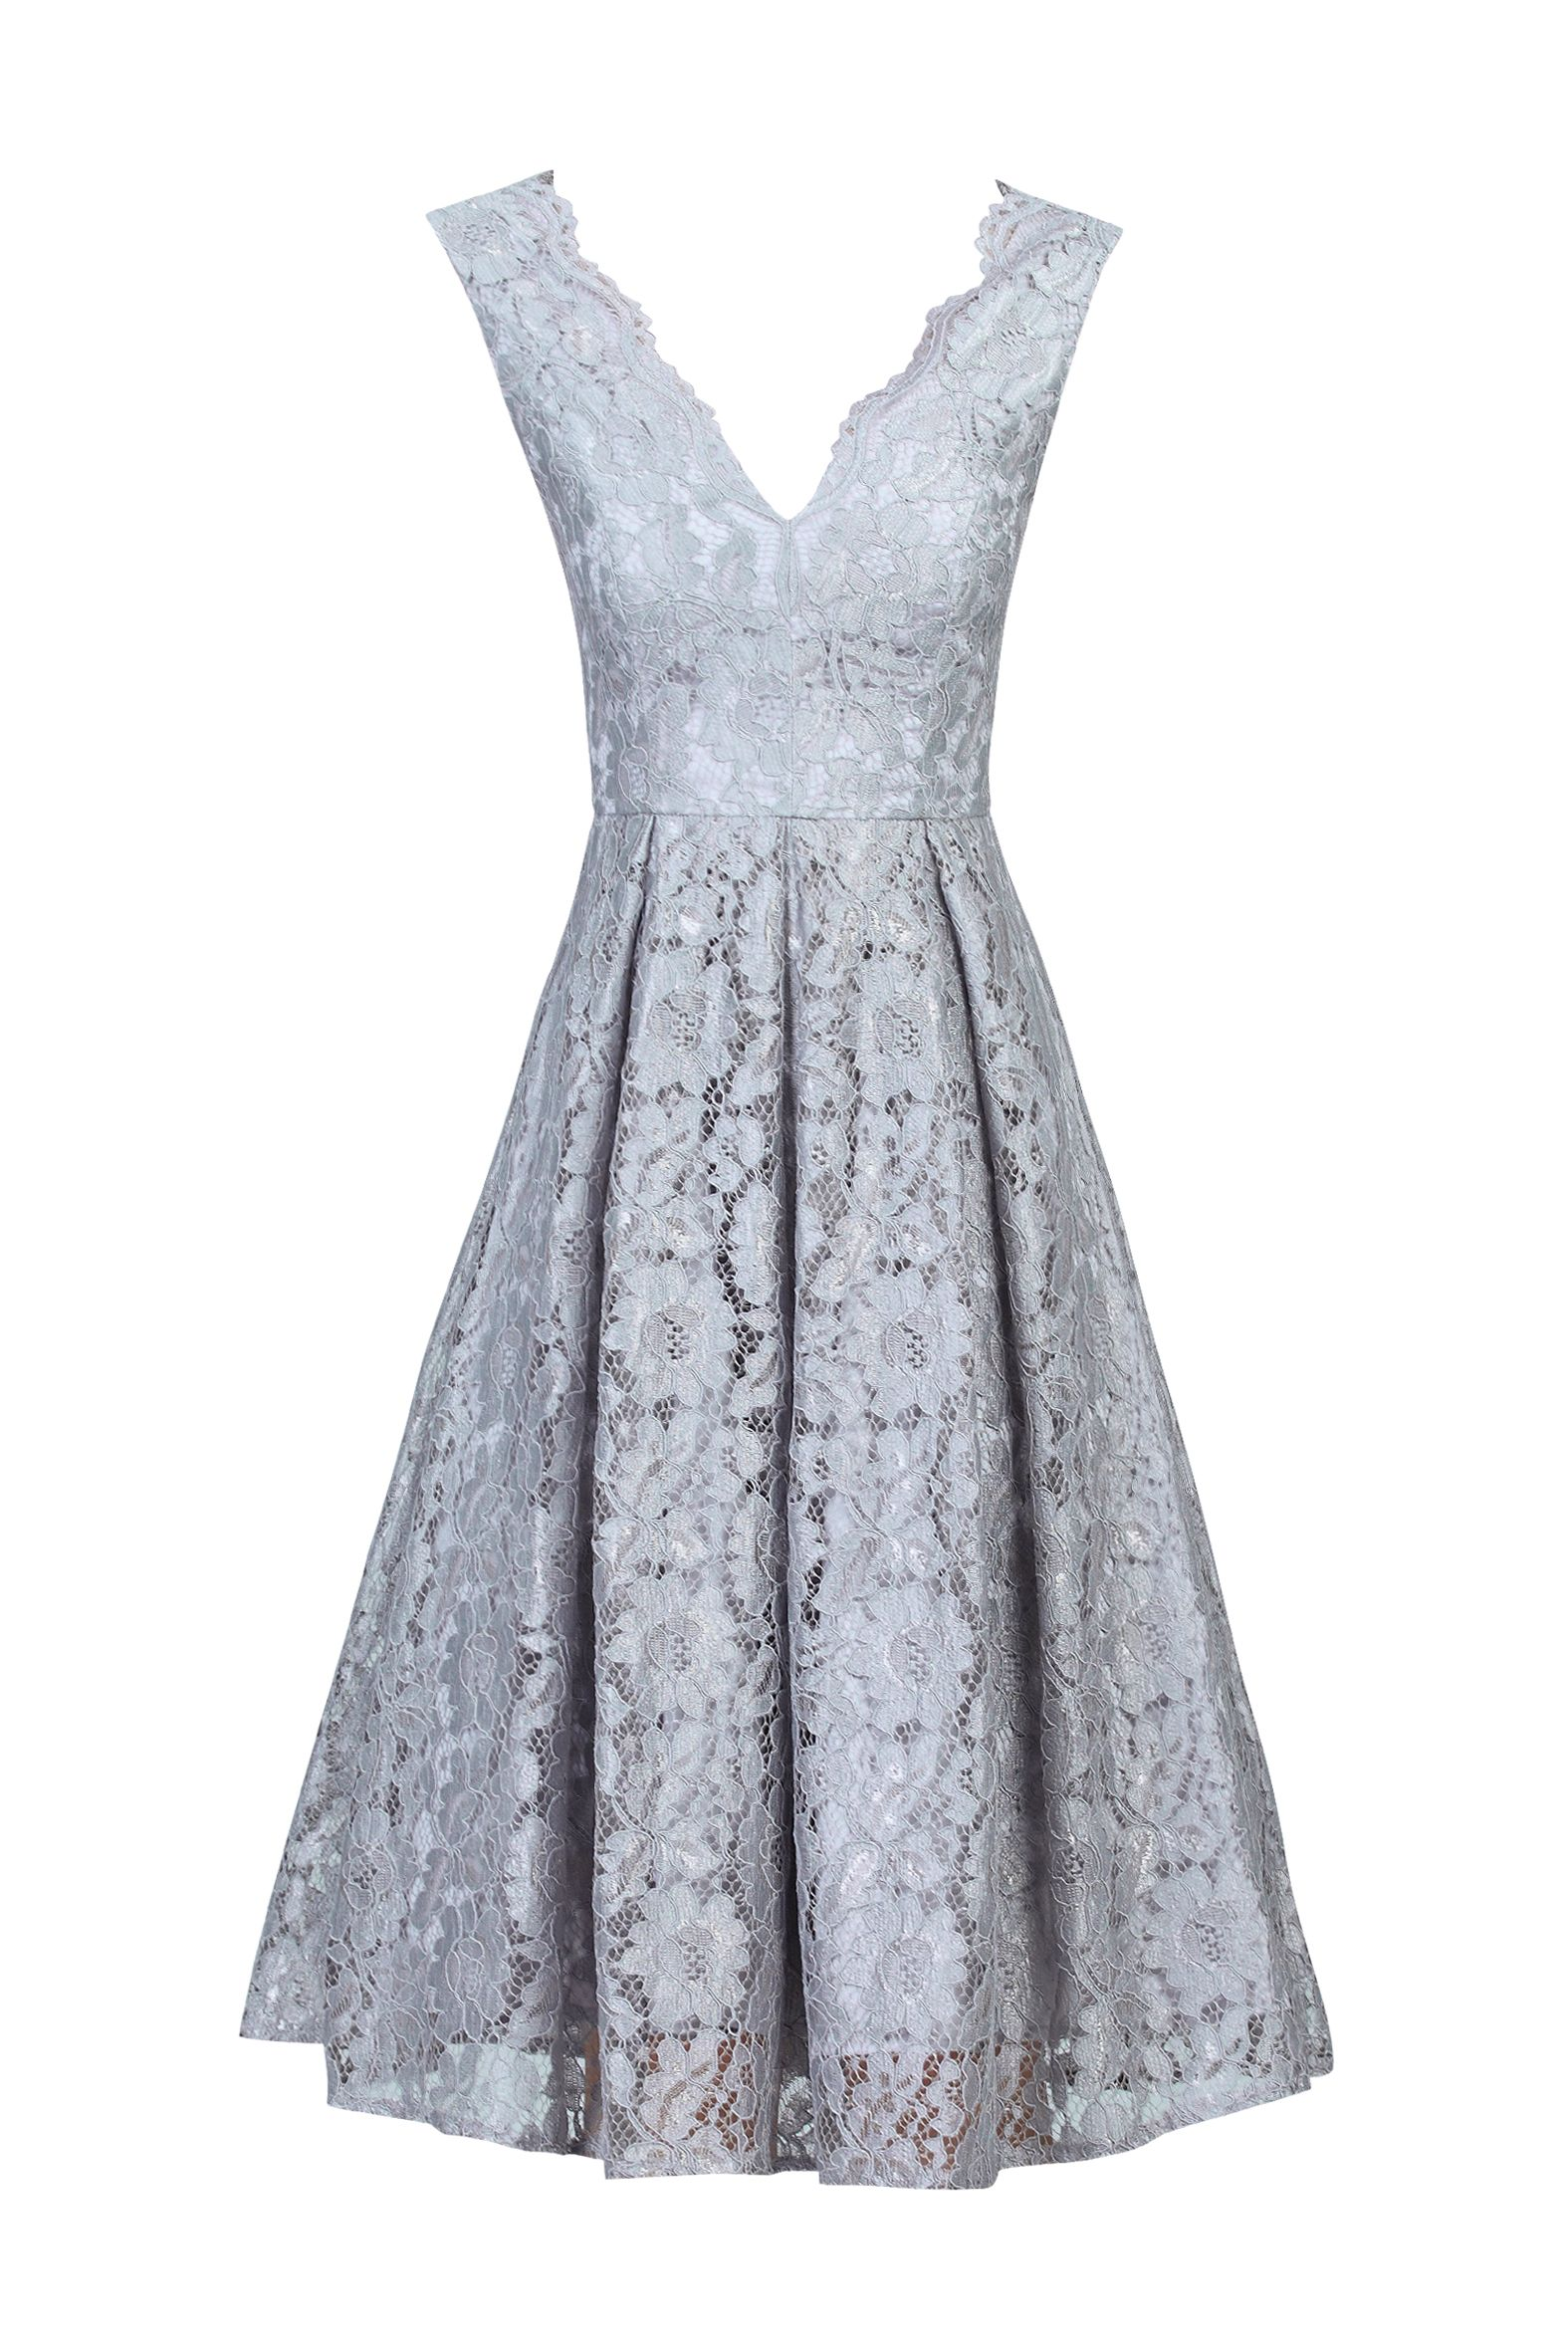 Jolie Moi Scalloped V Neck Lace Prom Dress, Grey